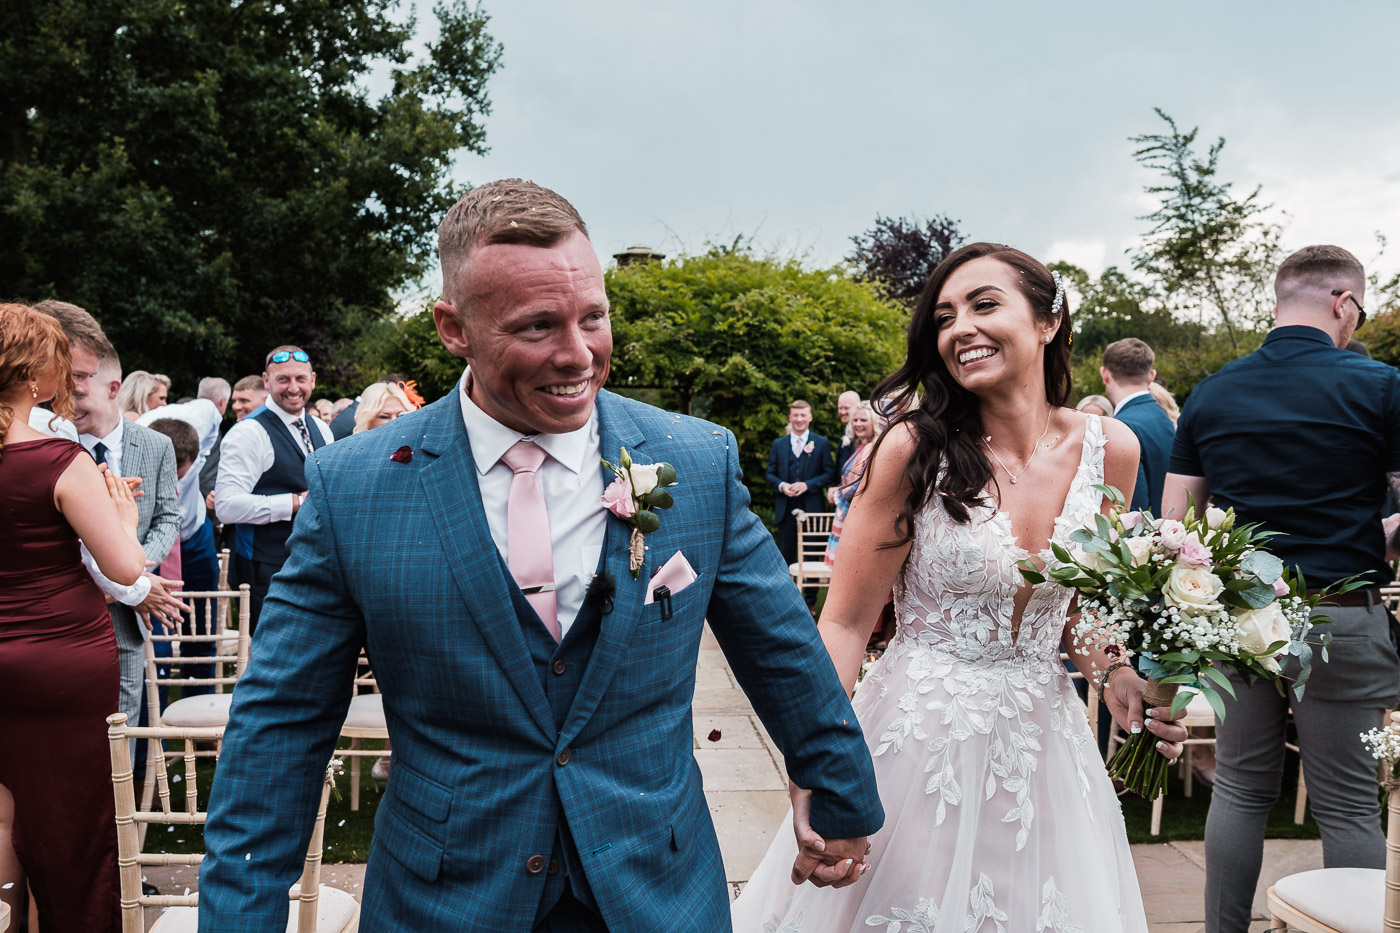 The happy couple leave their Pryors Hayes outdoor ceremony